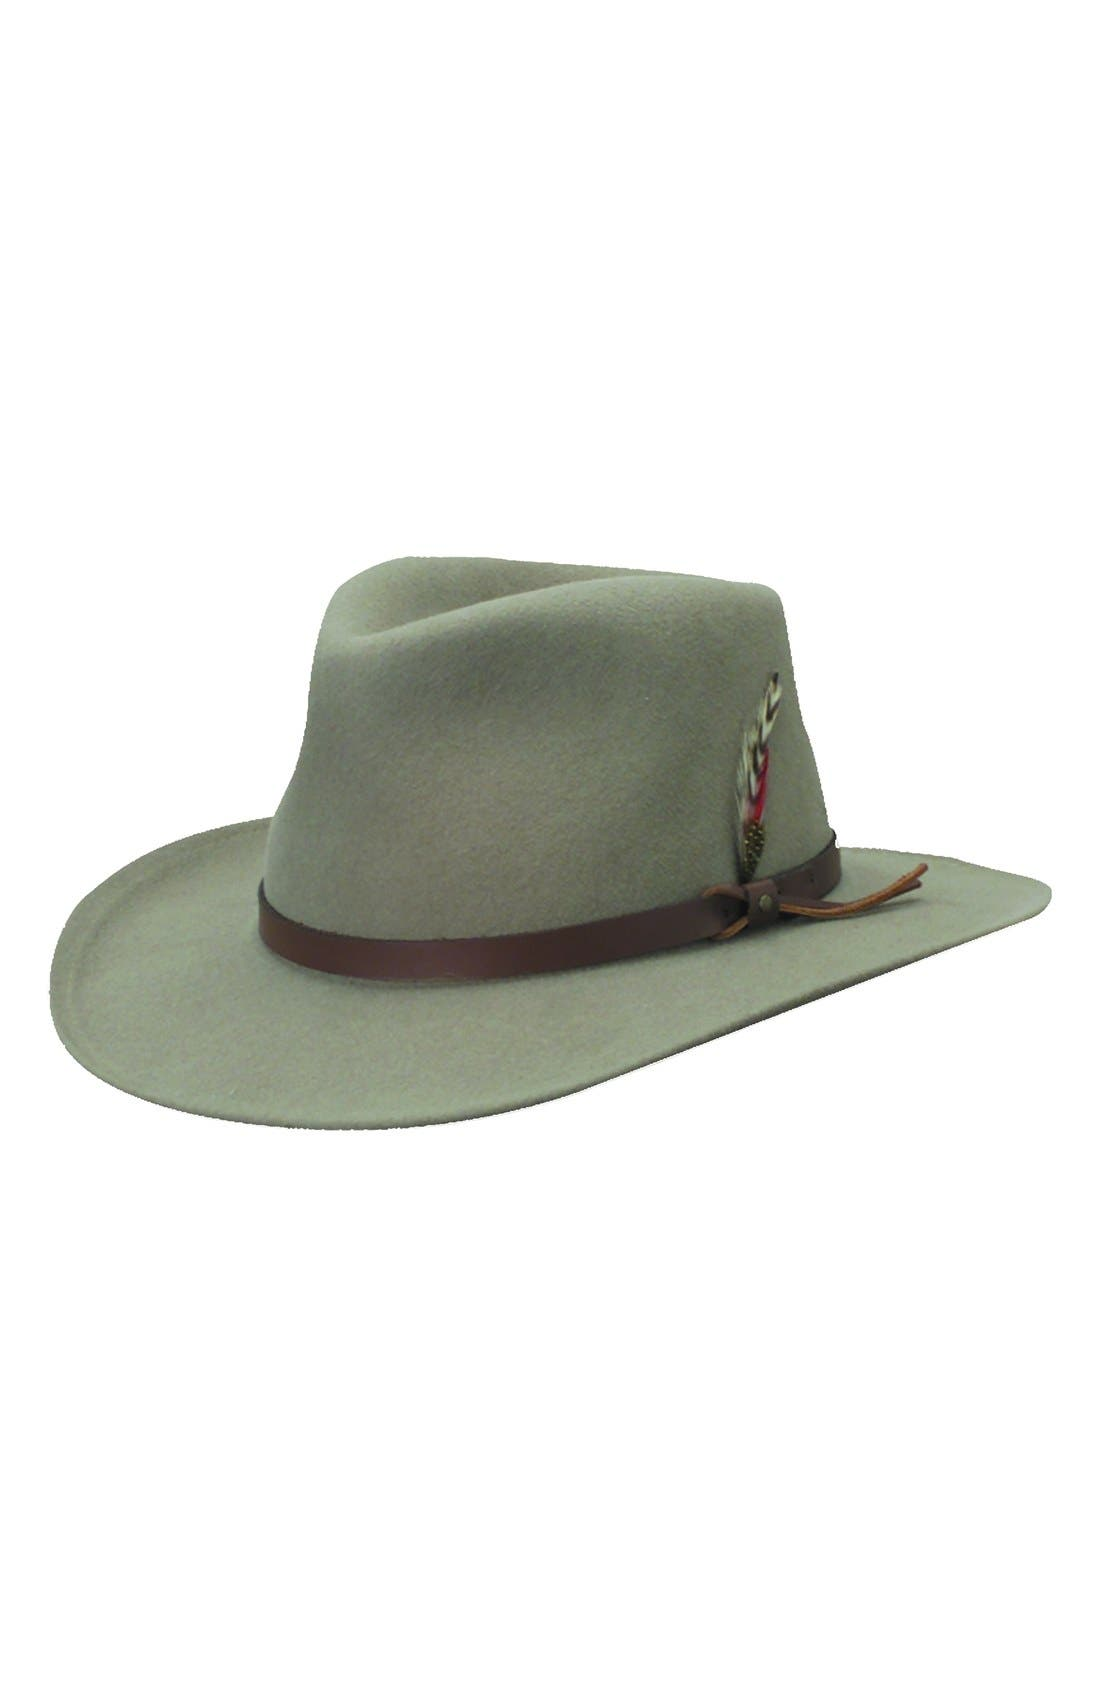 SCALA 'Classico' Crushable Felt Outback Hat